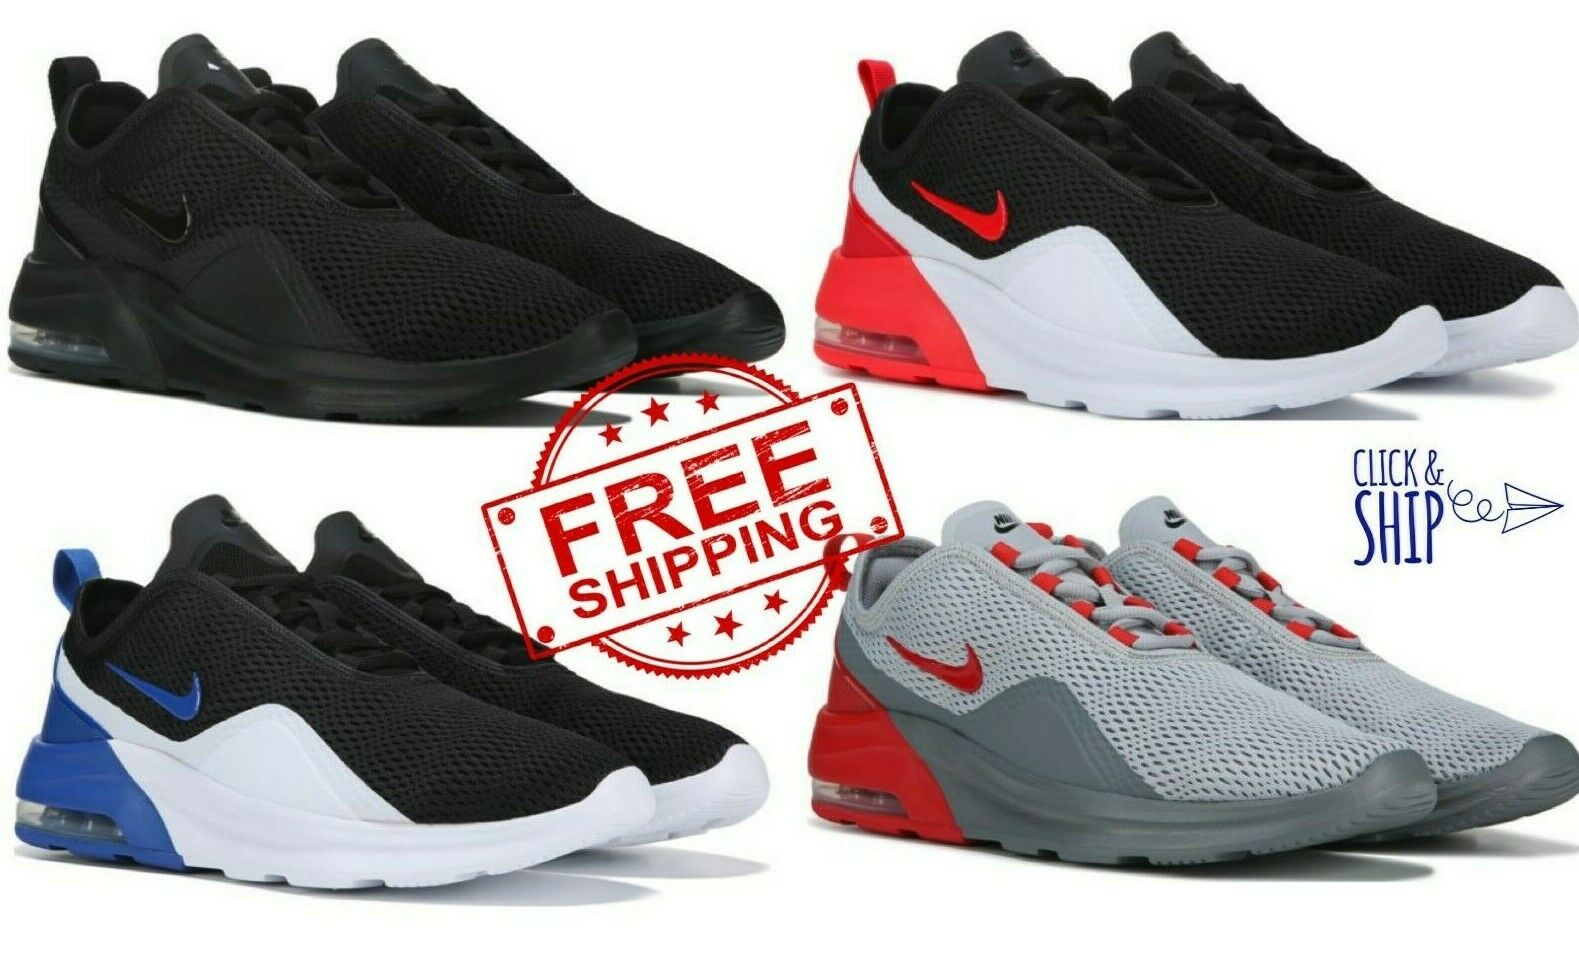 NIKE AIR MAX MOTION 2 MENS Casual Running Cross Training shoes Sneakers 270 NEW